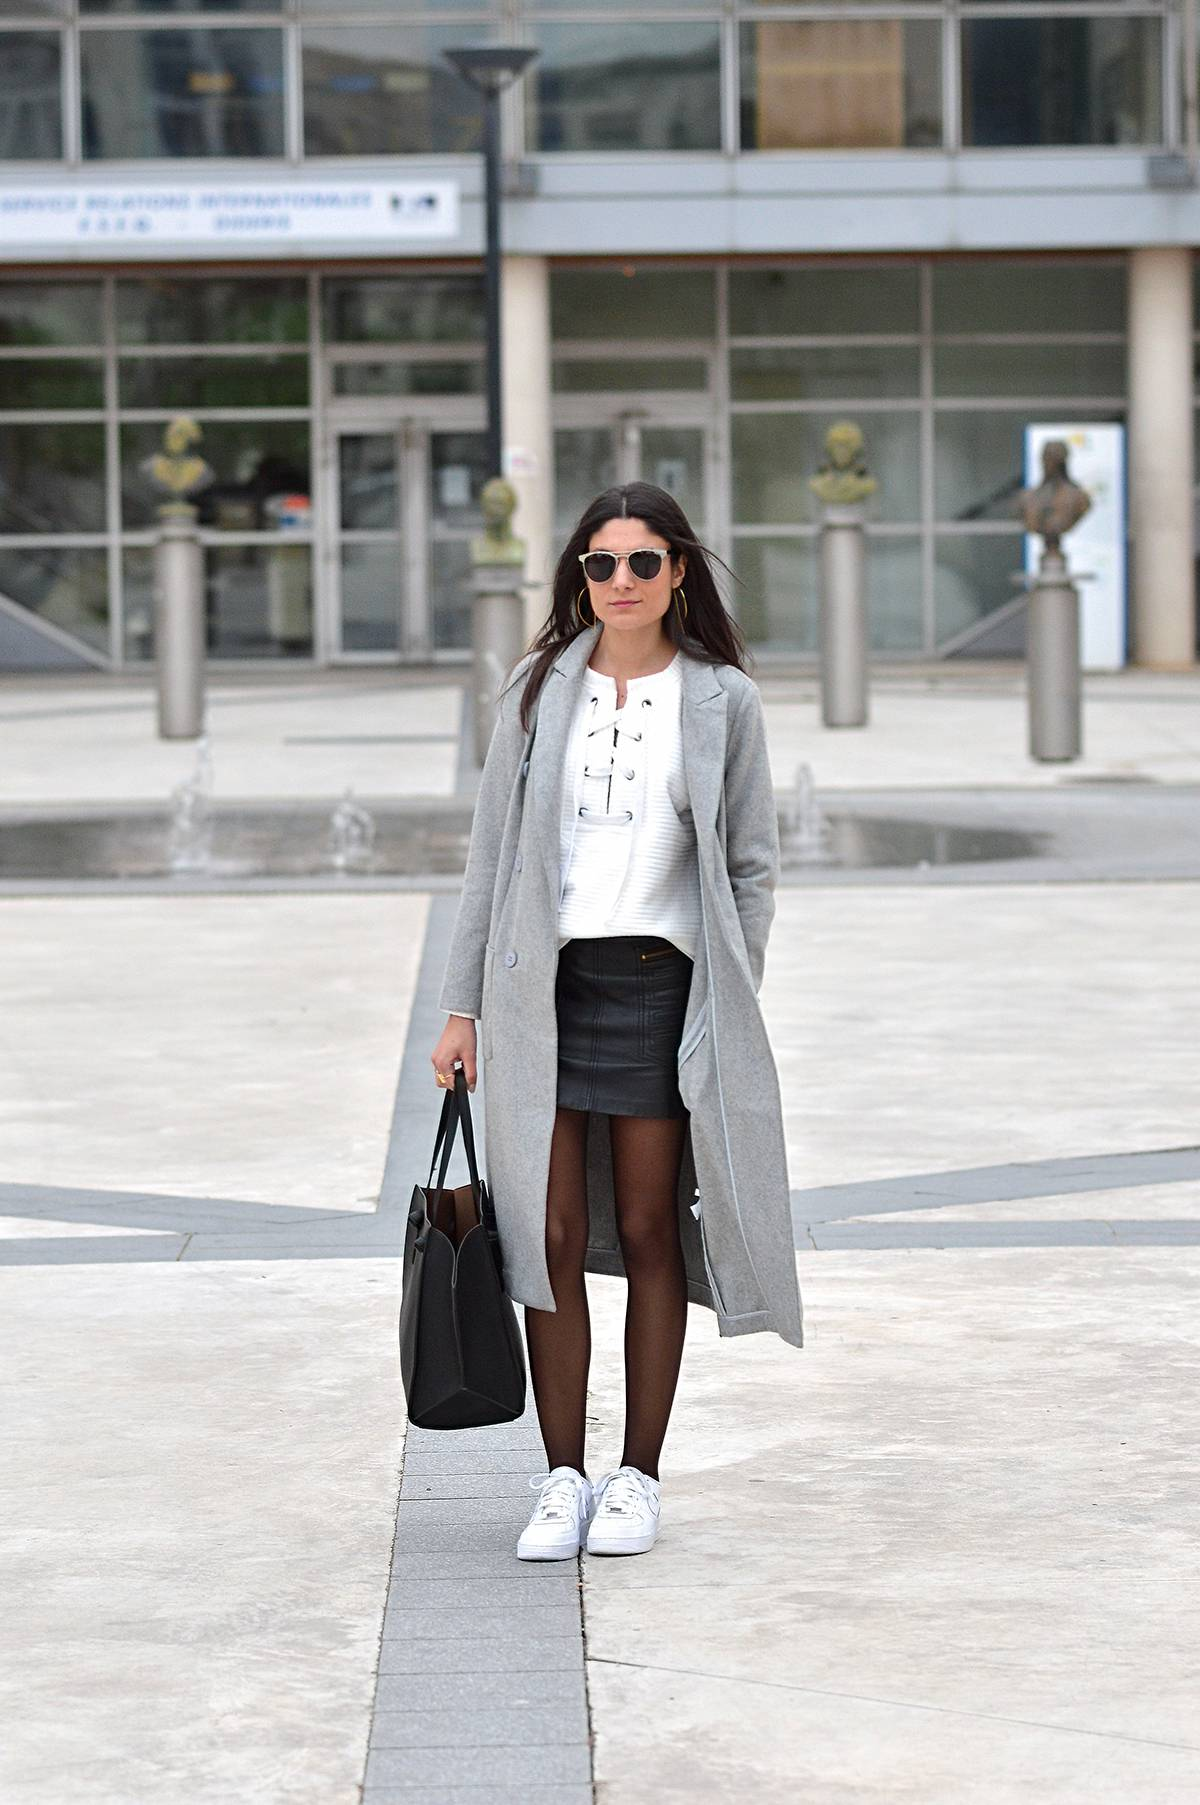 Federica L. looks ultra stylish and contemporary in this striking lace up sweater from Shein, worn here with a leather mini skirt and a marl grey maxi coat. Finish this look off with a pair of simple white sneakers to steal Federica's style. Outfit: Shein.